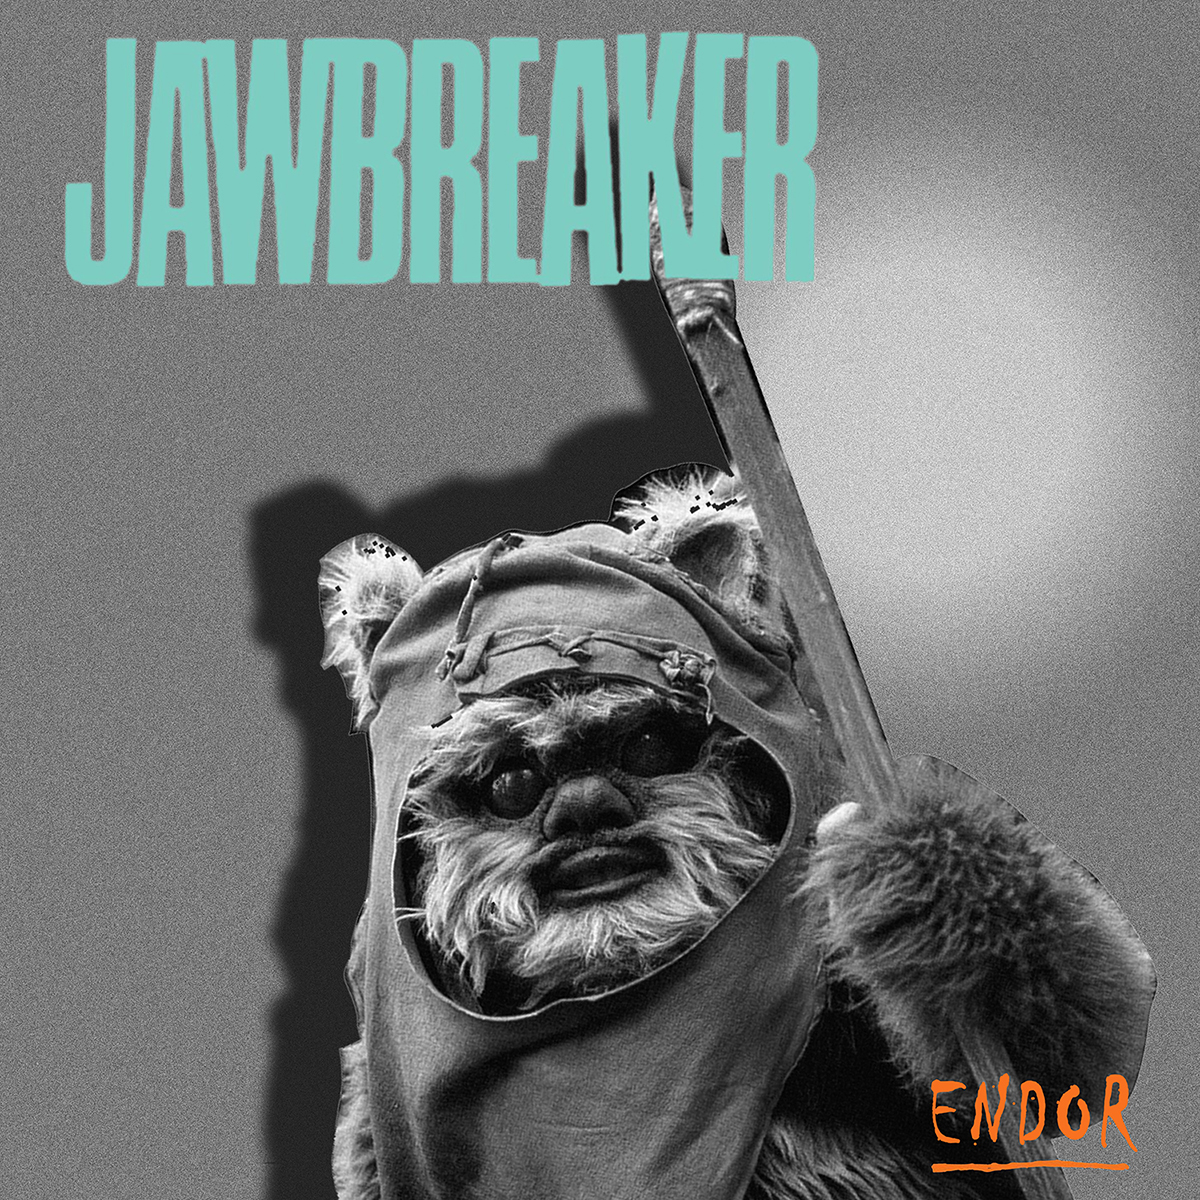 May The 4th Be With You Reddit: May The Fourth Be With Jawbreaker